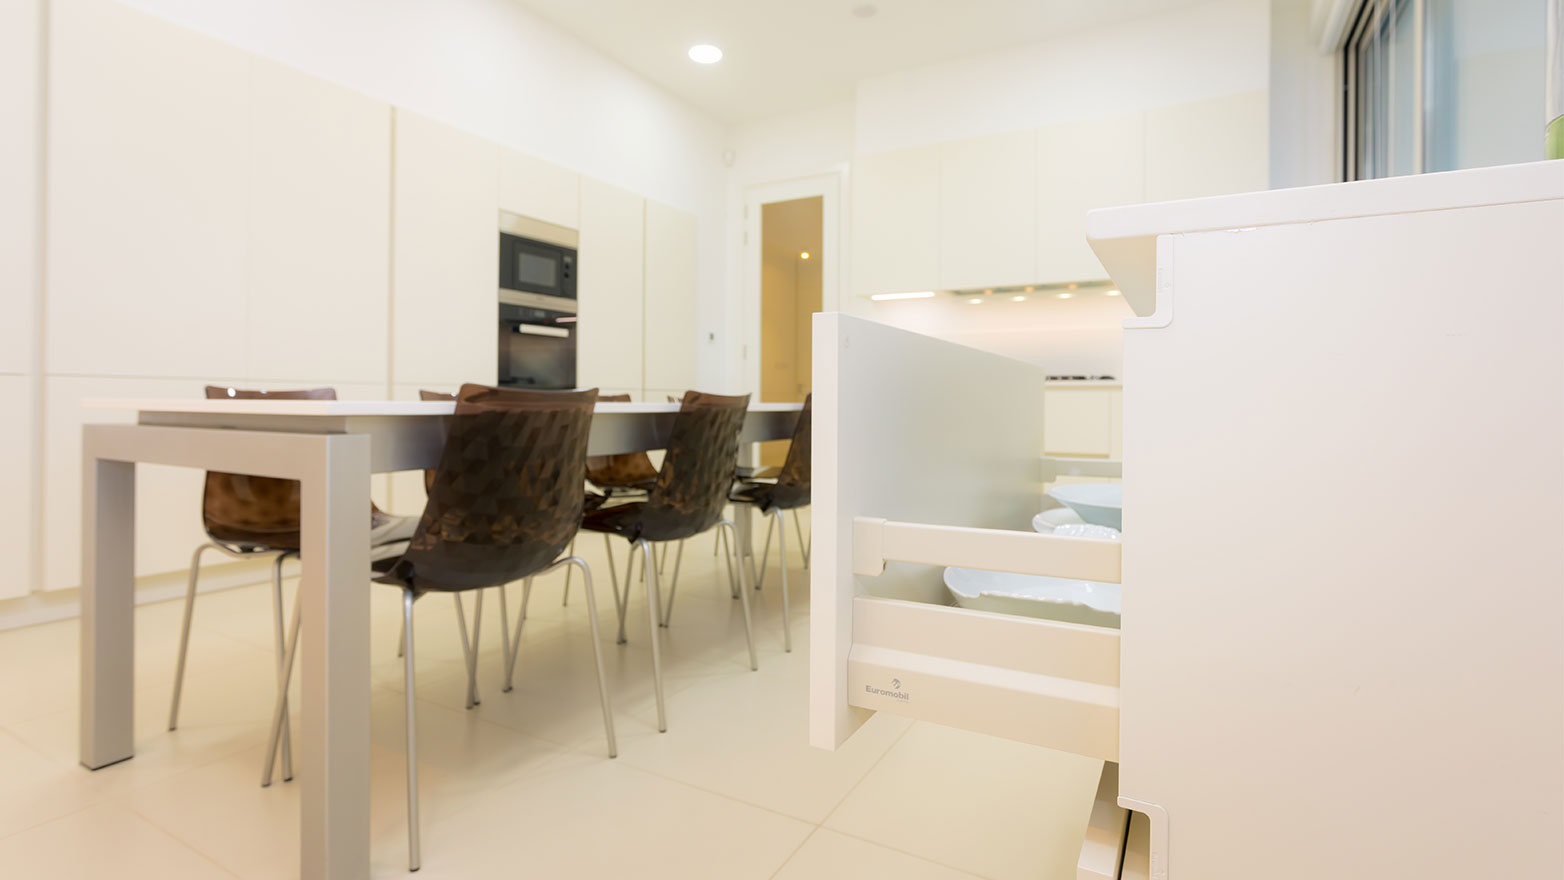 Residence in Mazoto Euromobil Kitchen Renovation Cyprus Kitchen Studio Living & More Bedroom Solutions Wardrobes Zalf